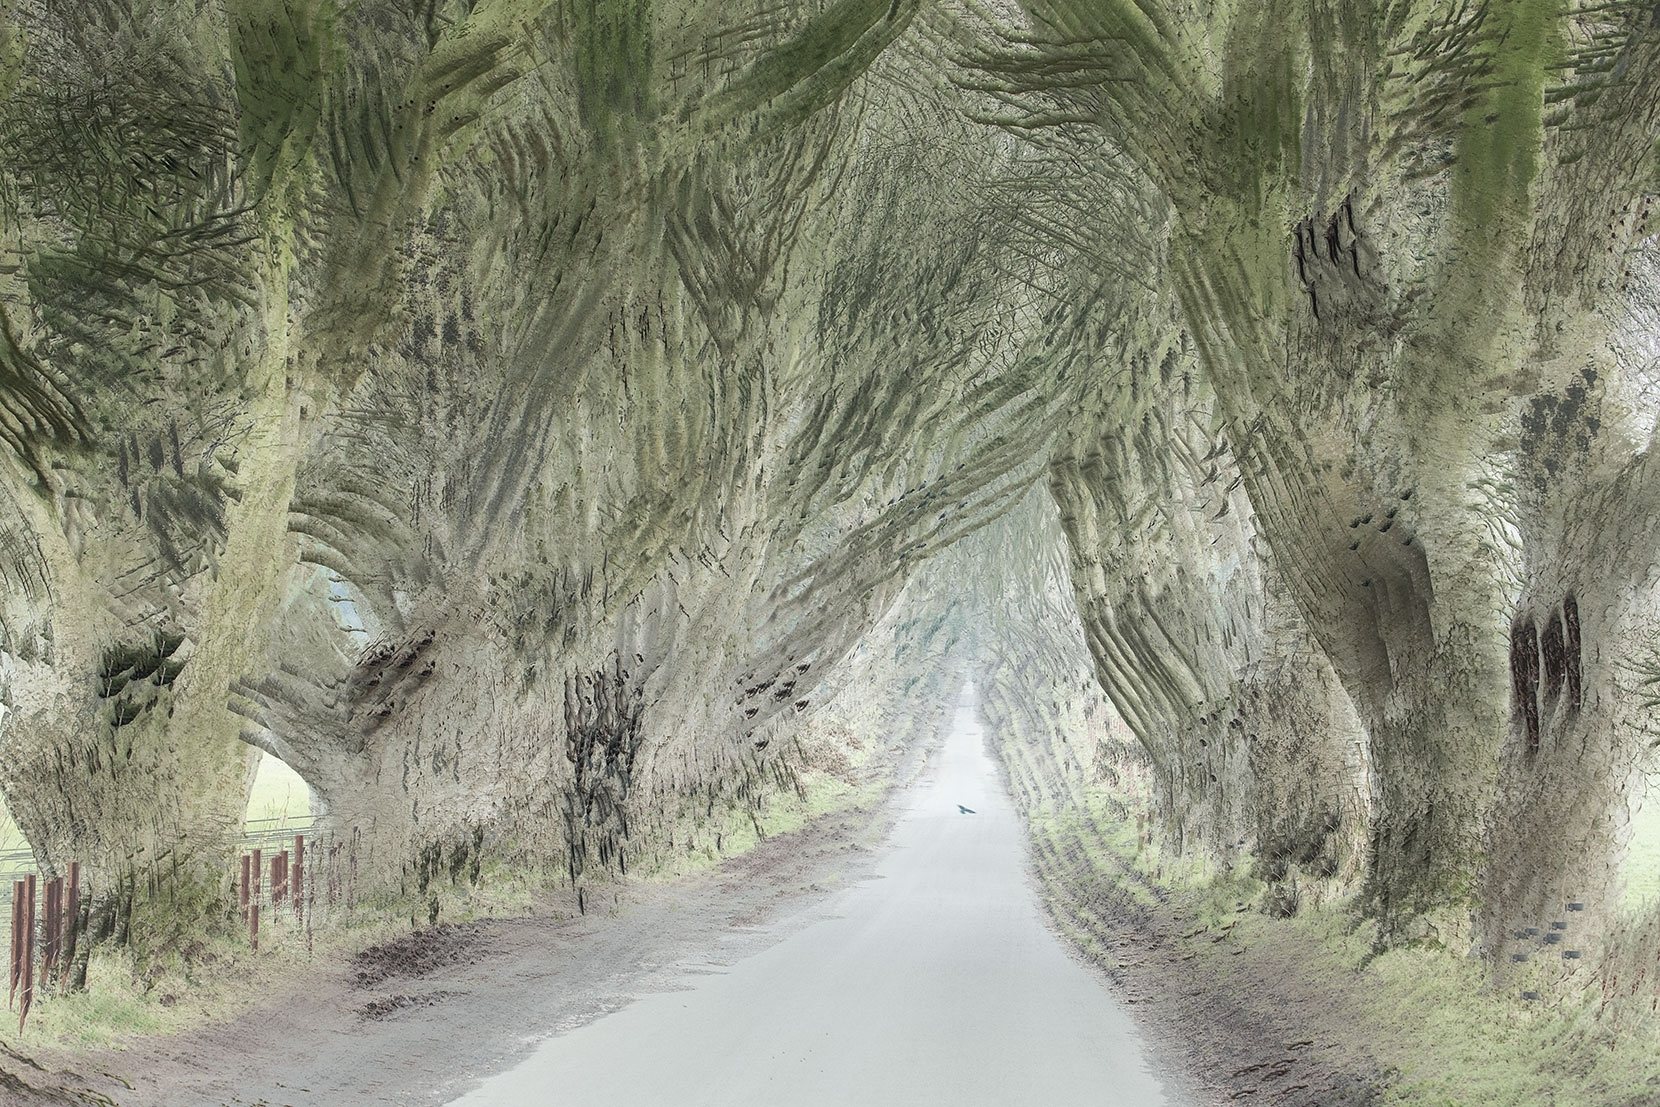 Dark Hedges in Northern Ireland, an alternative take using 9 multiple exposures